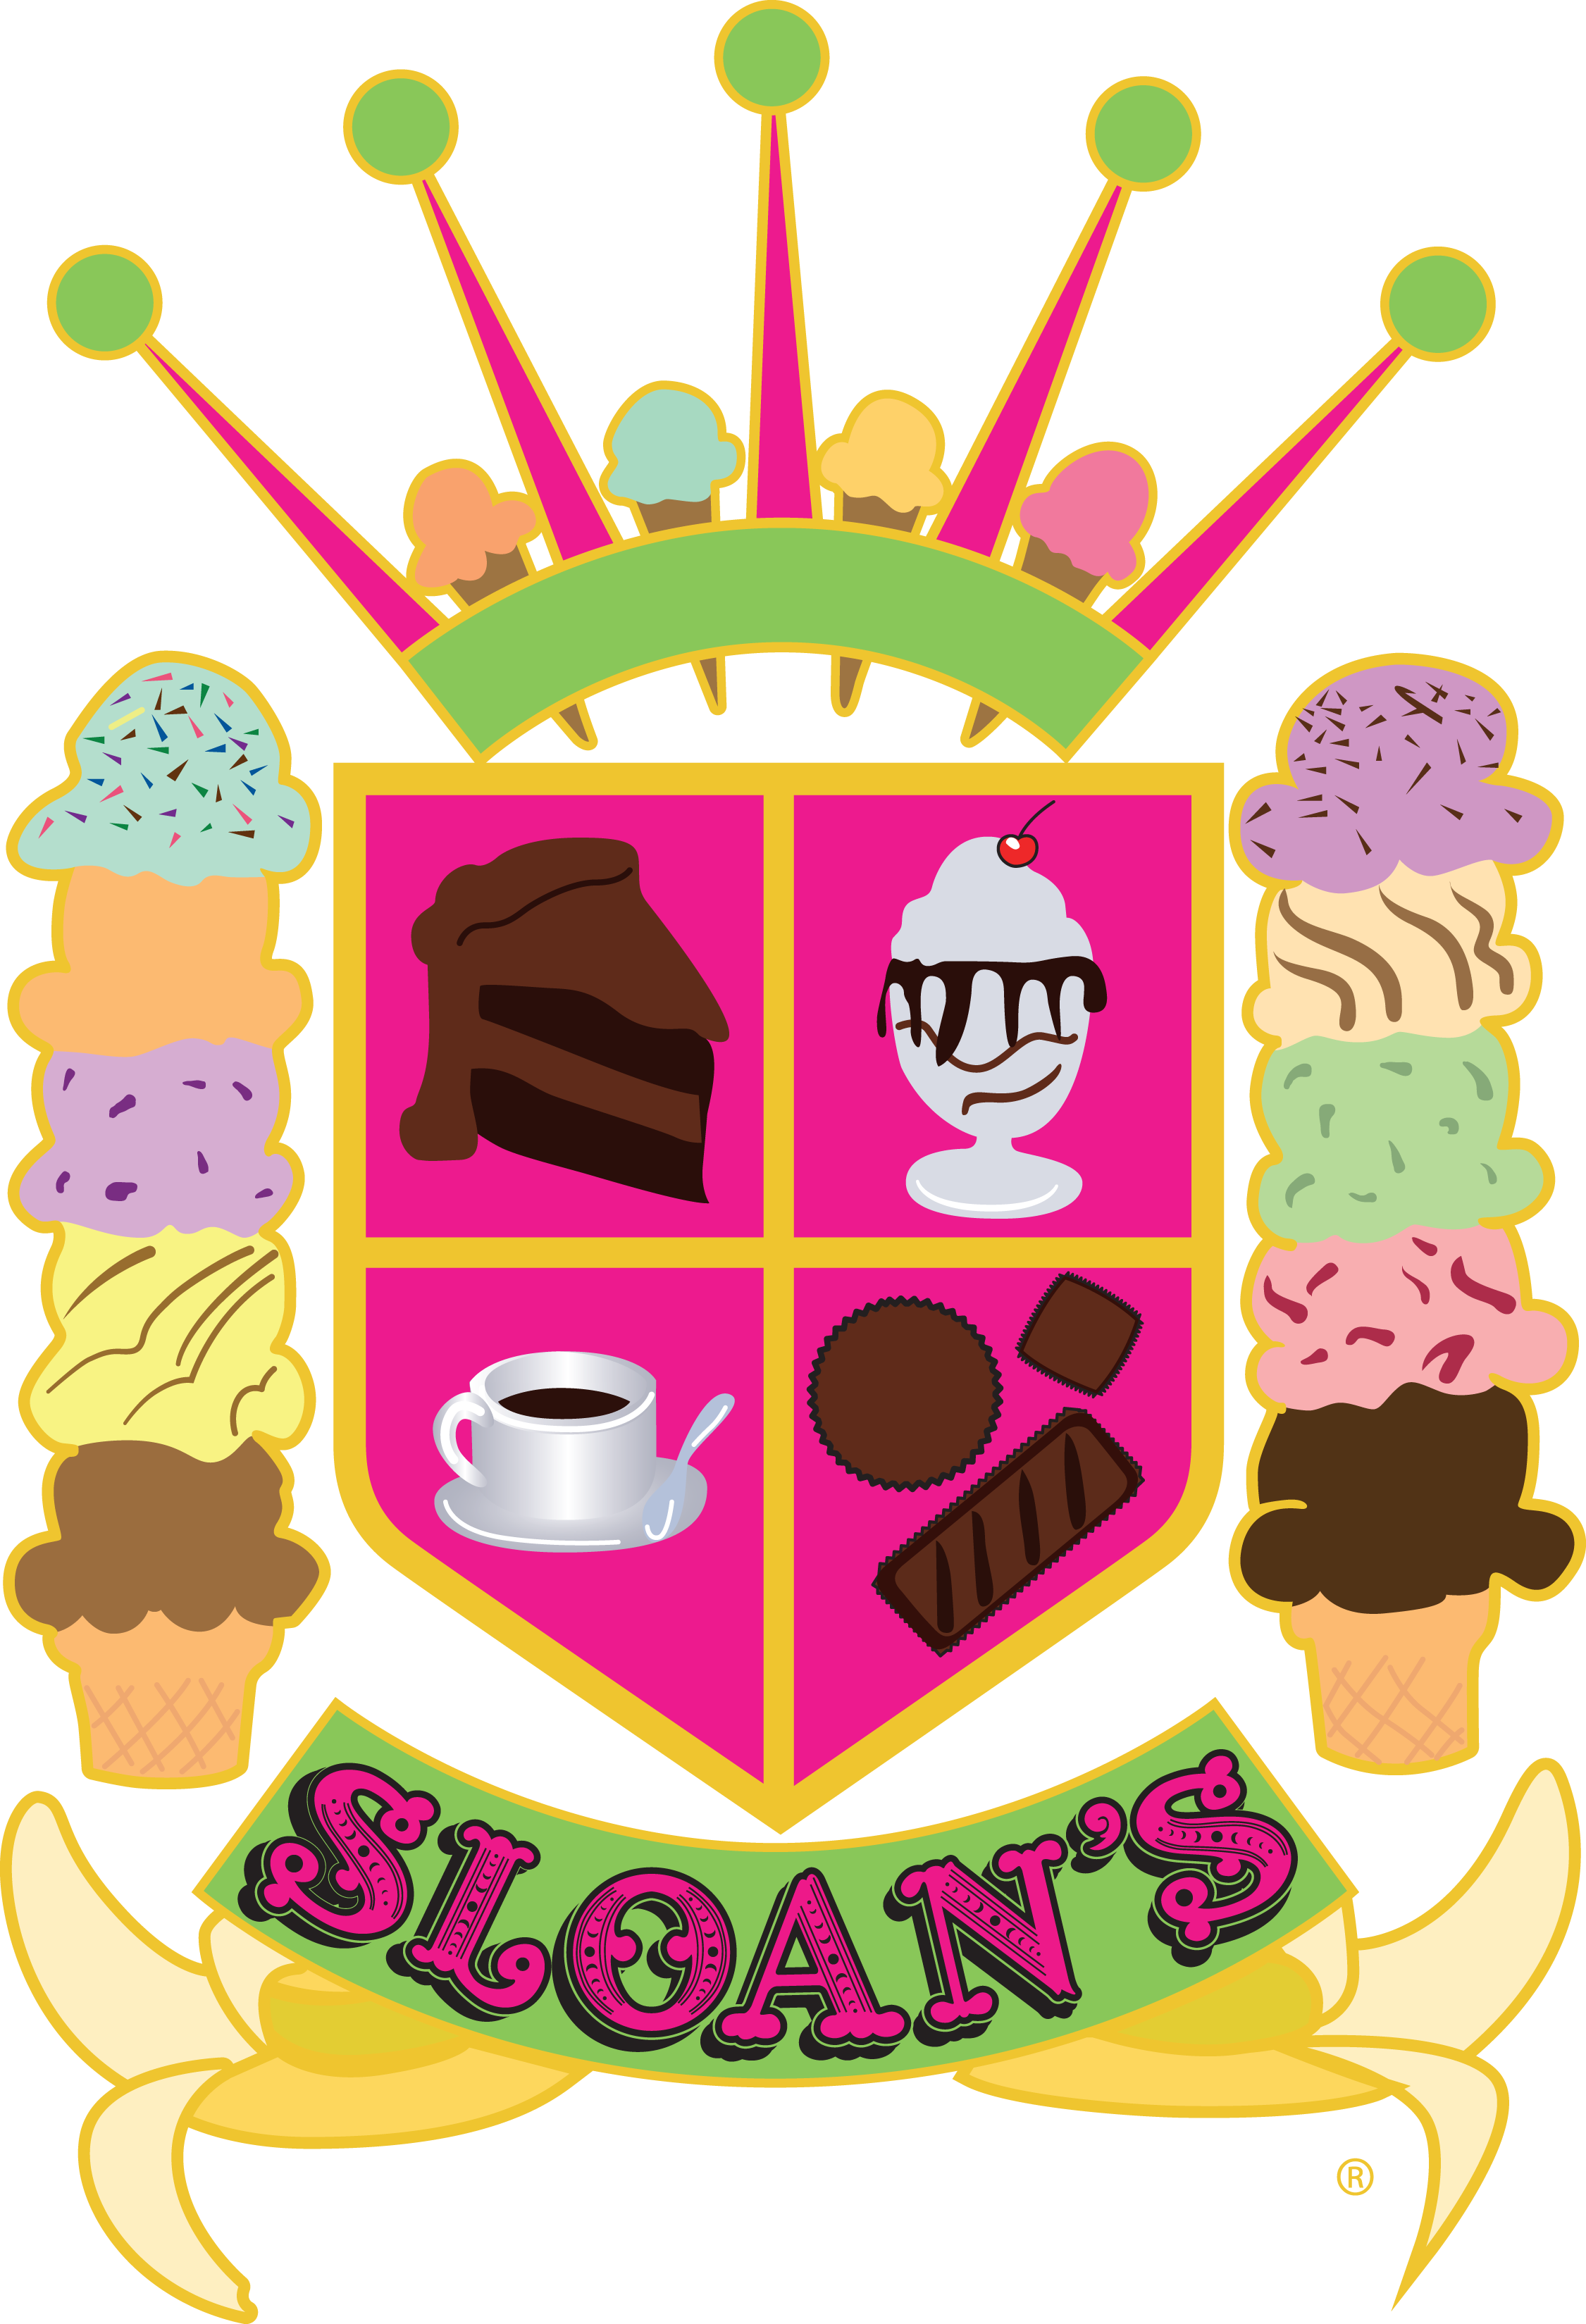 Best of Doral™ presents Sloan's Ice Cream restaurant. A Doral Chamber of Commerce member.